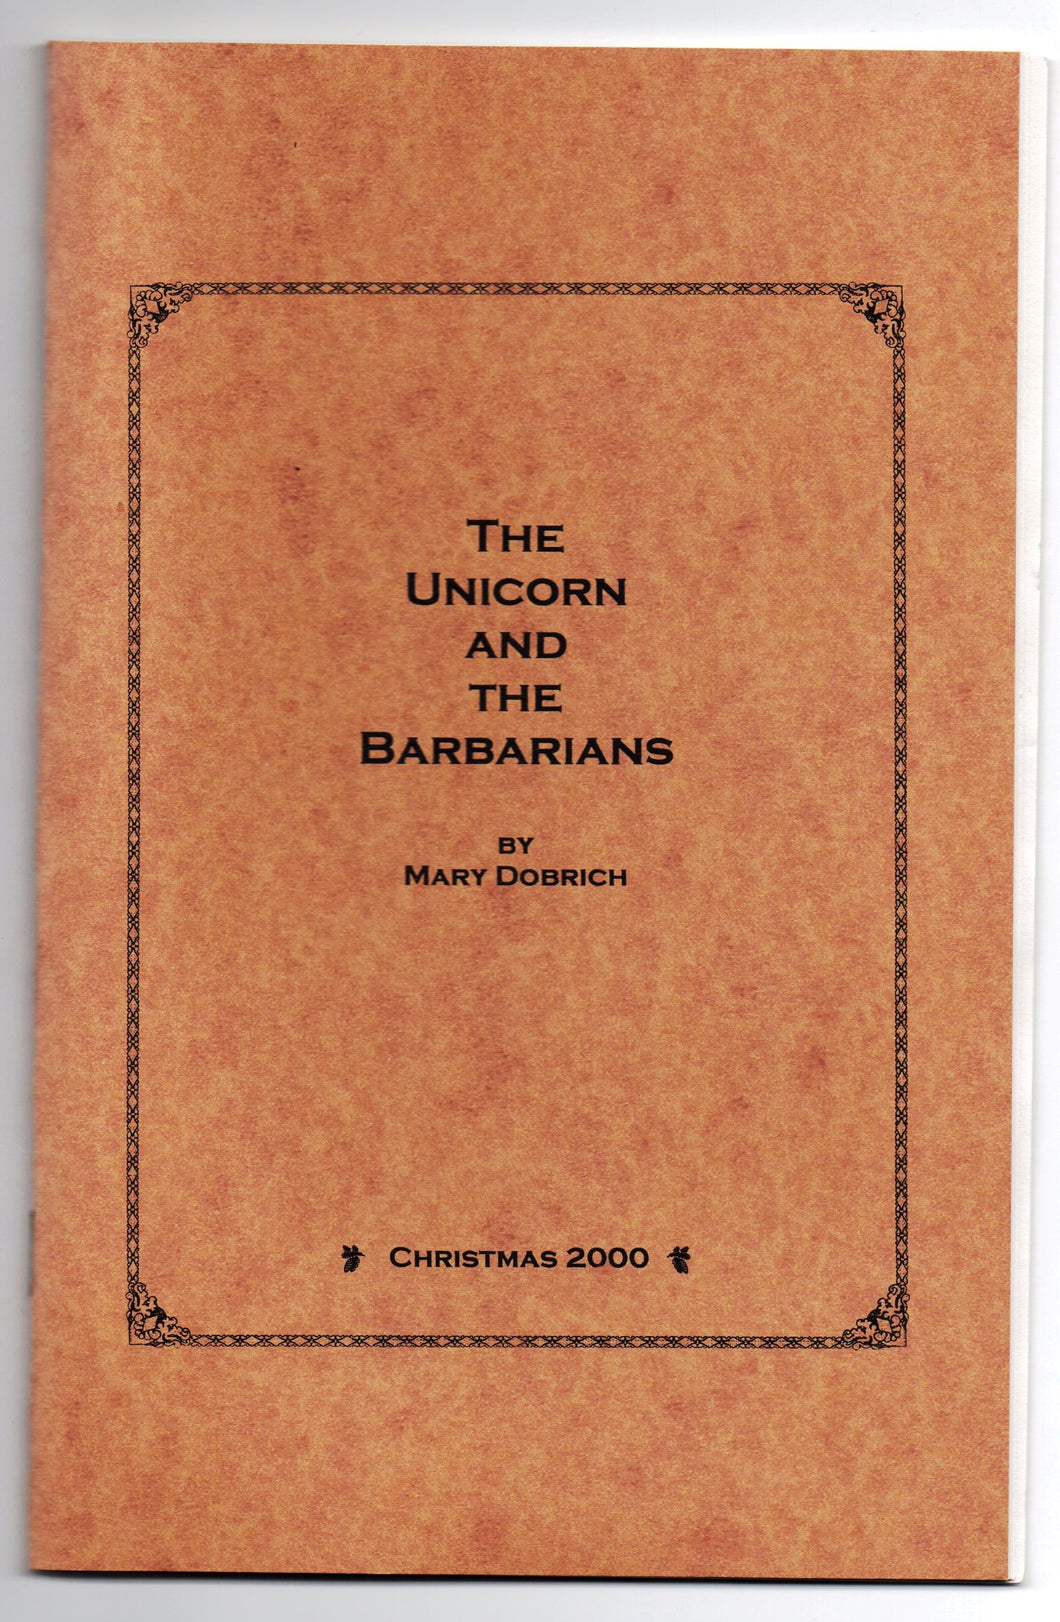 The Unicorn and the Barbarians